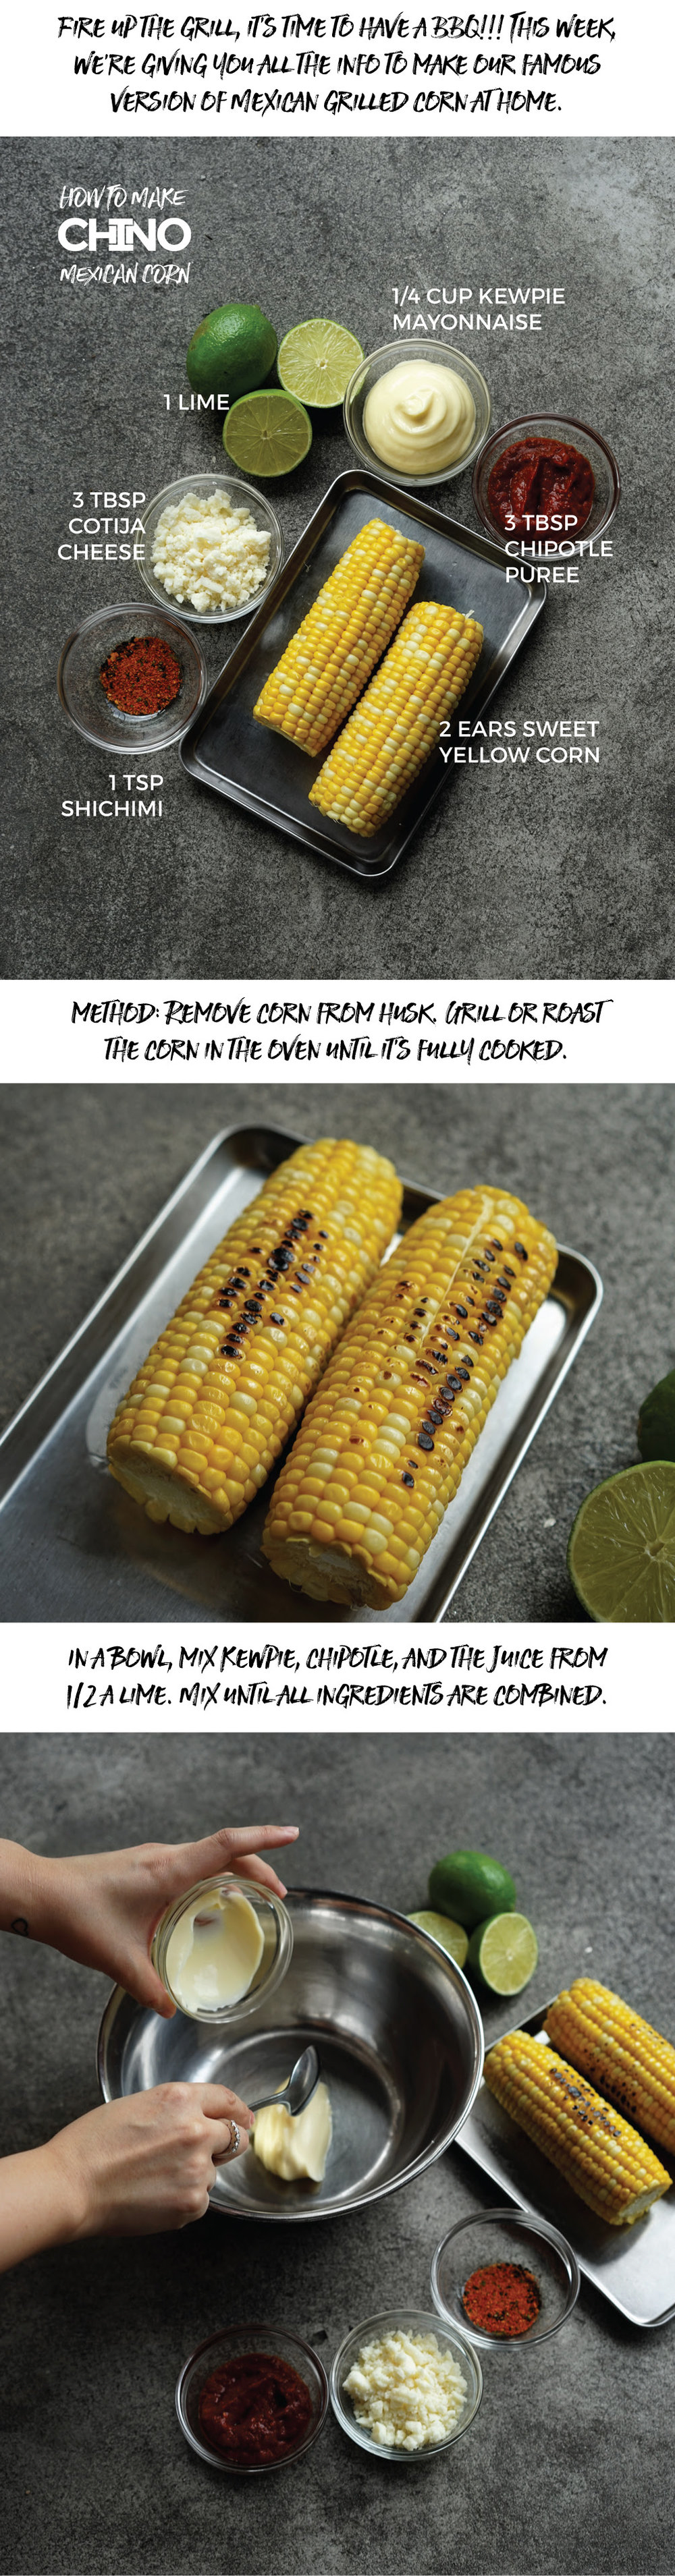 CHINO HK Mexican Corn Recipe